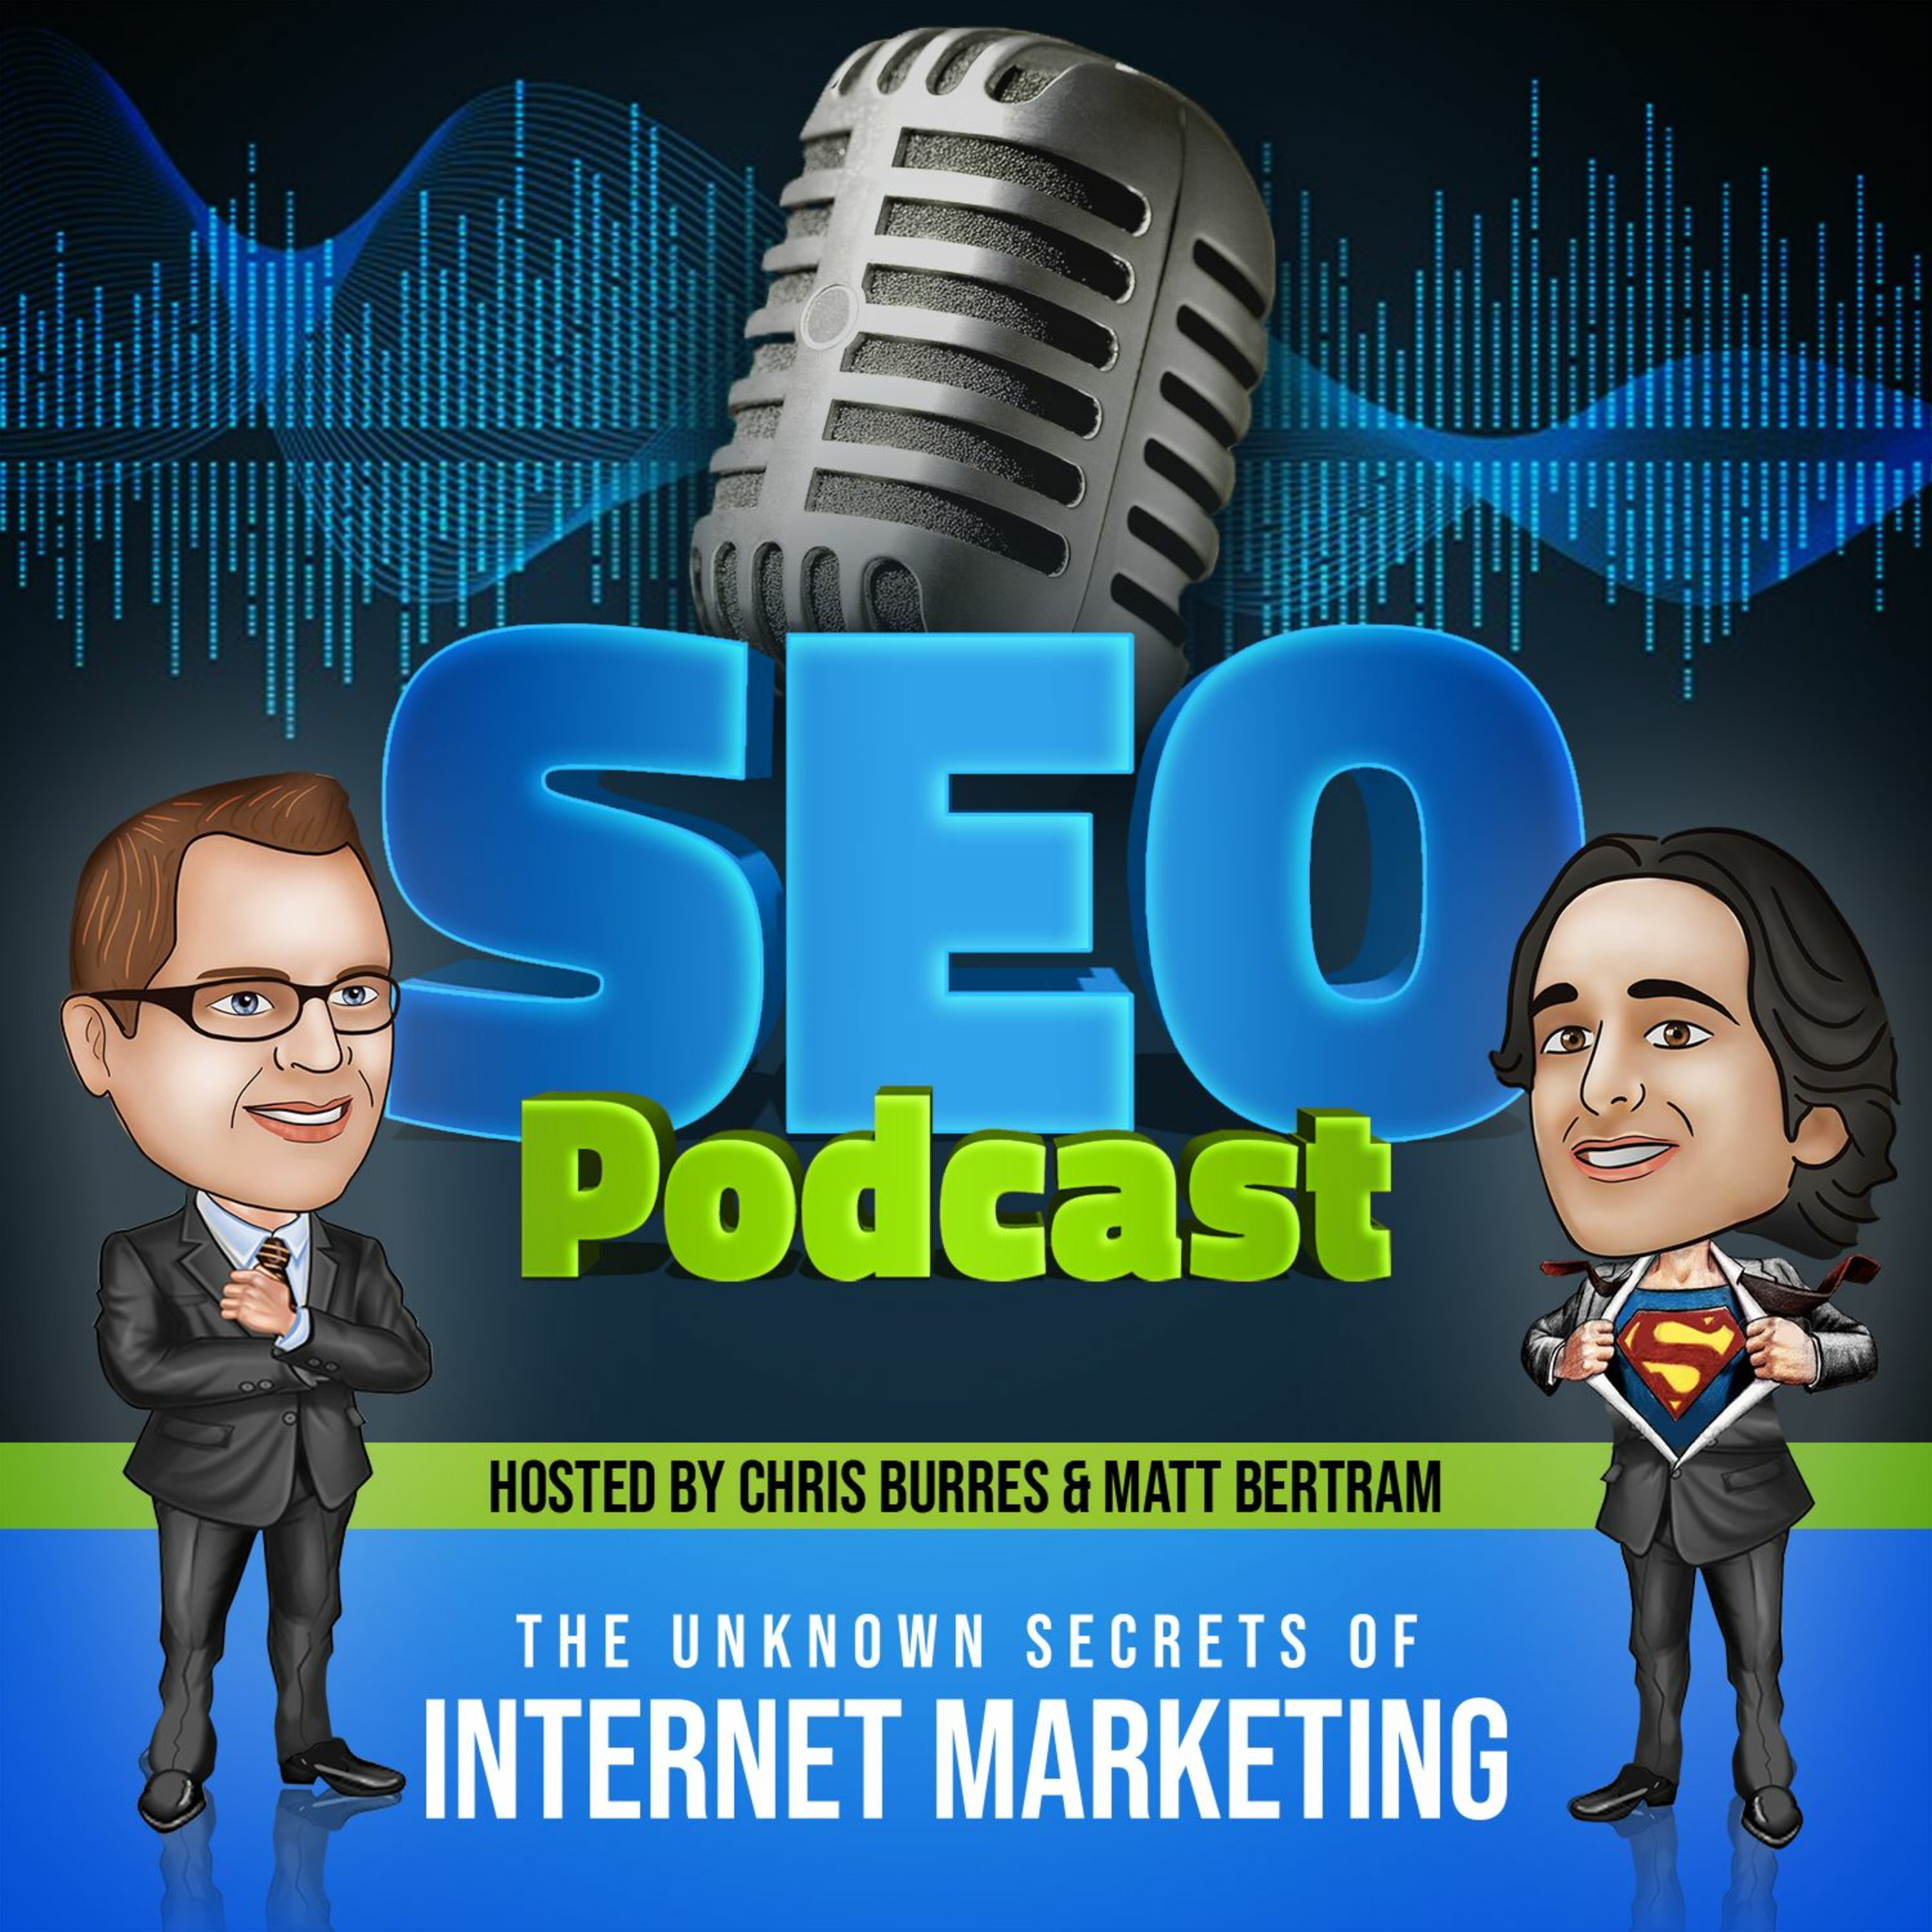 Search Engine Watch - Three ways to up your video marketing game by Ann Smarty #497